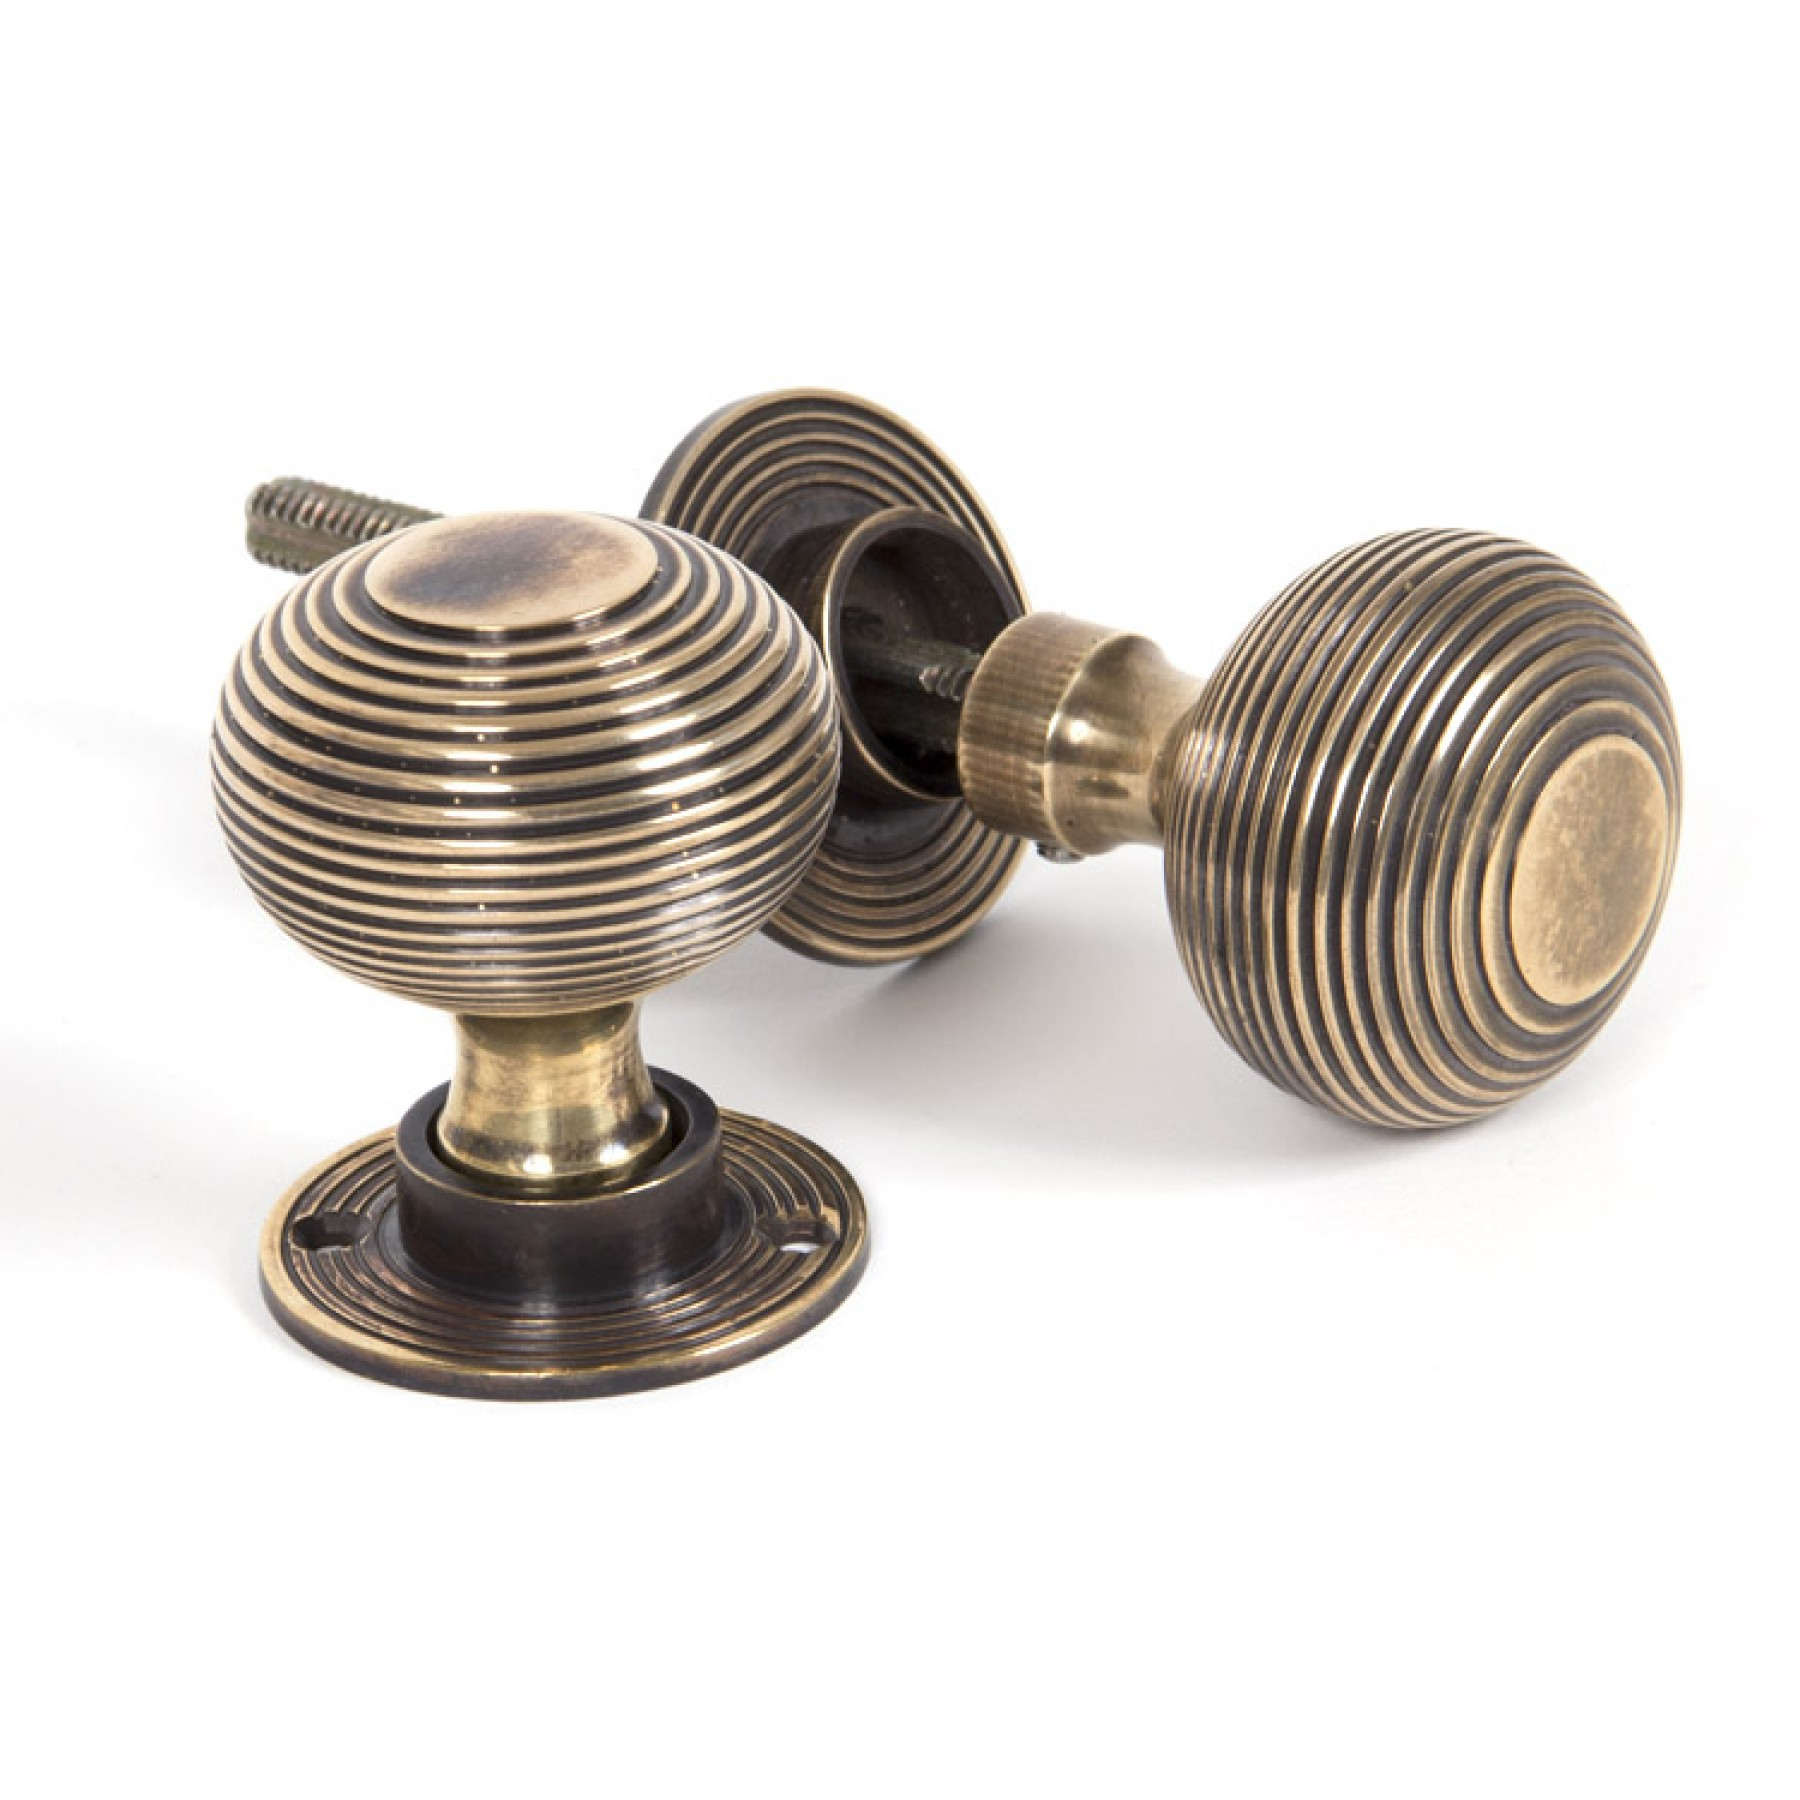 Period Door Furniture - Brass Door Knobs